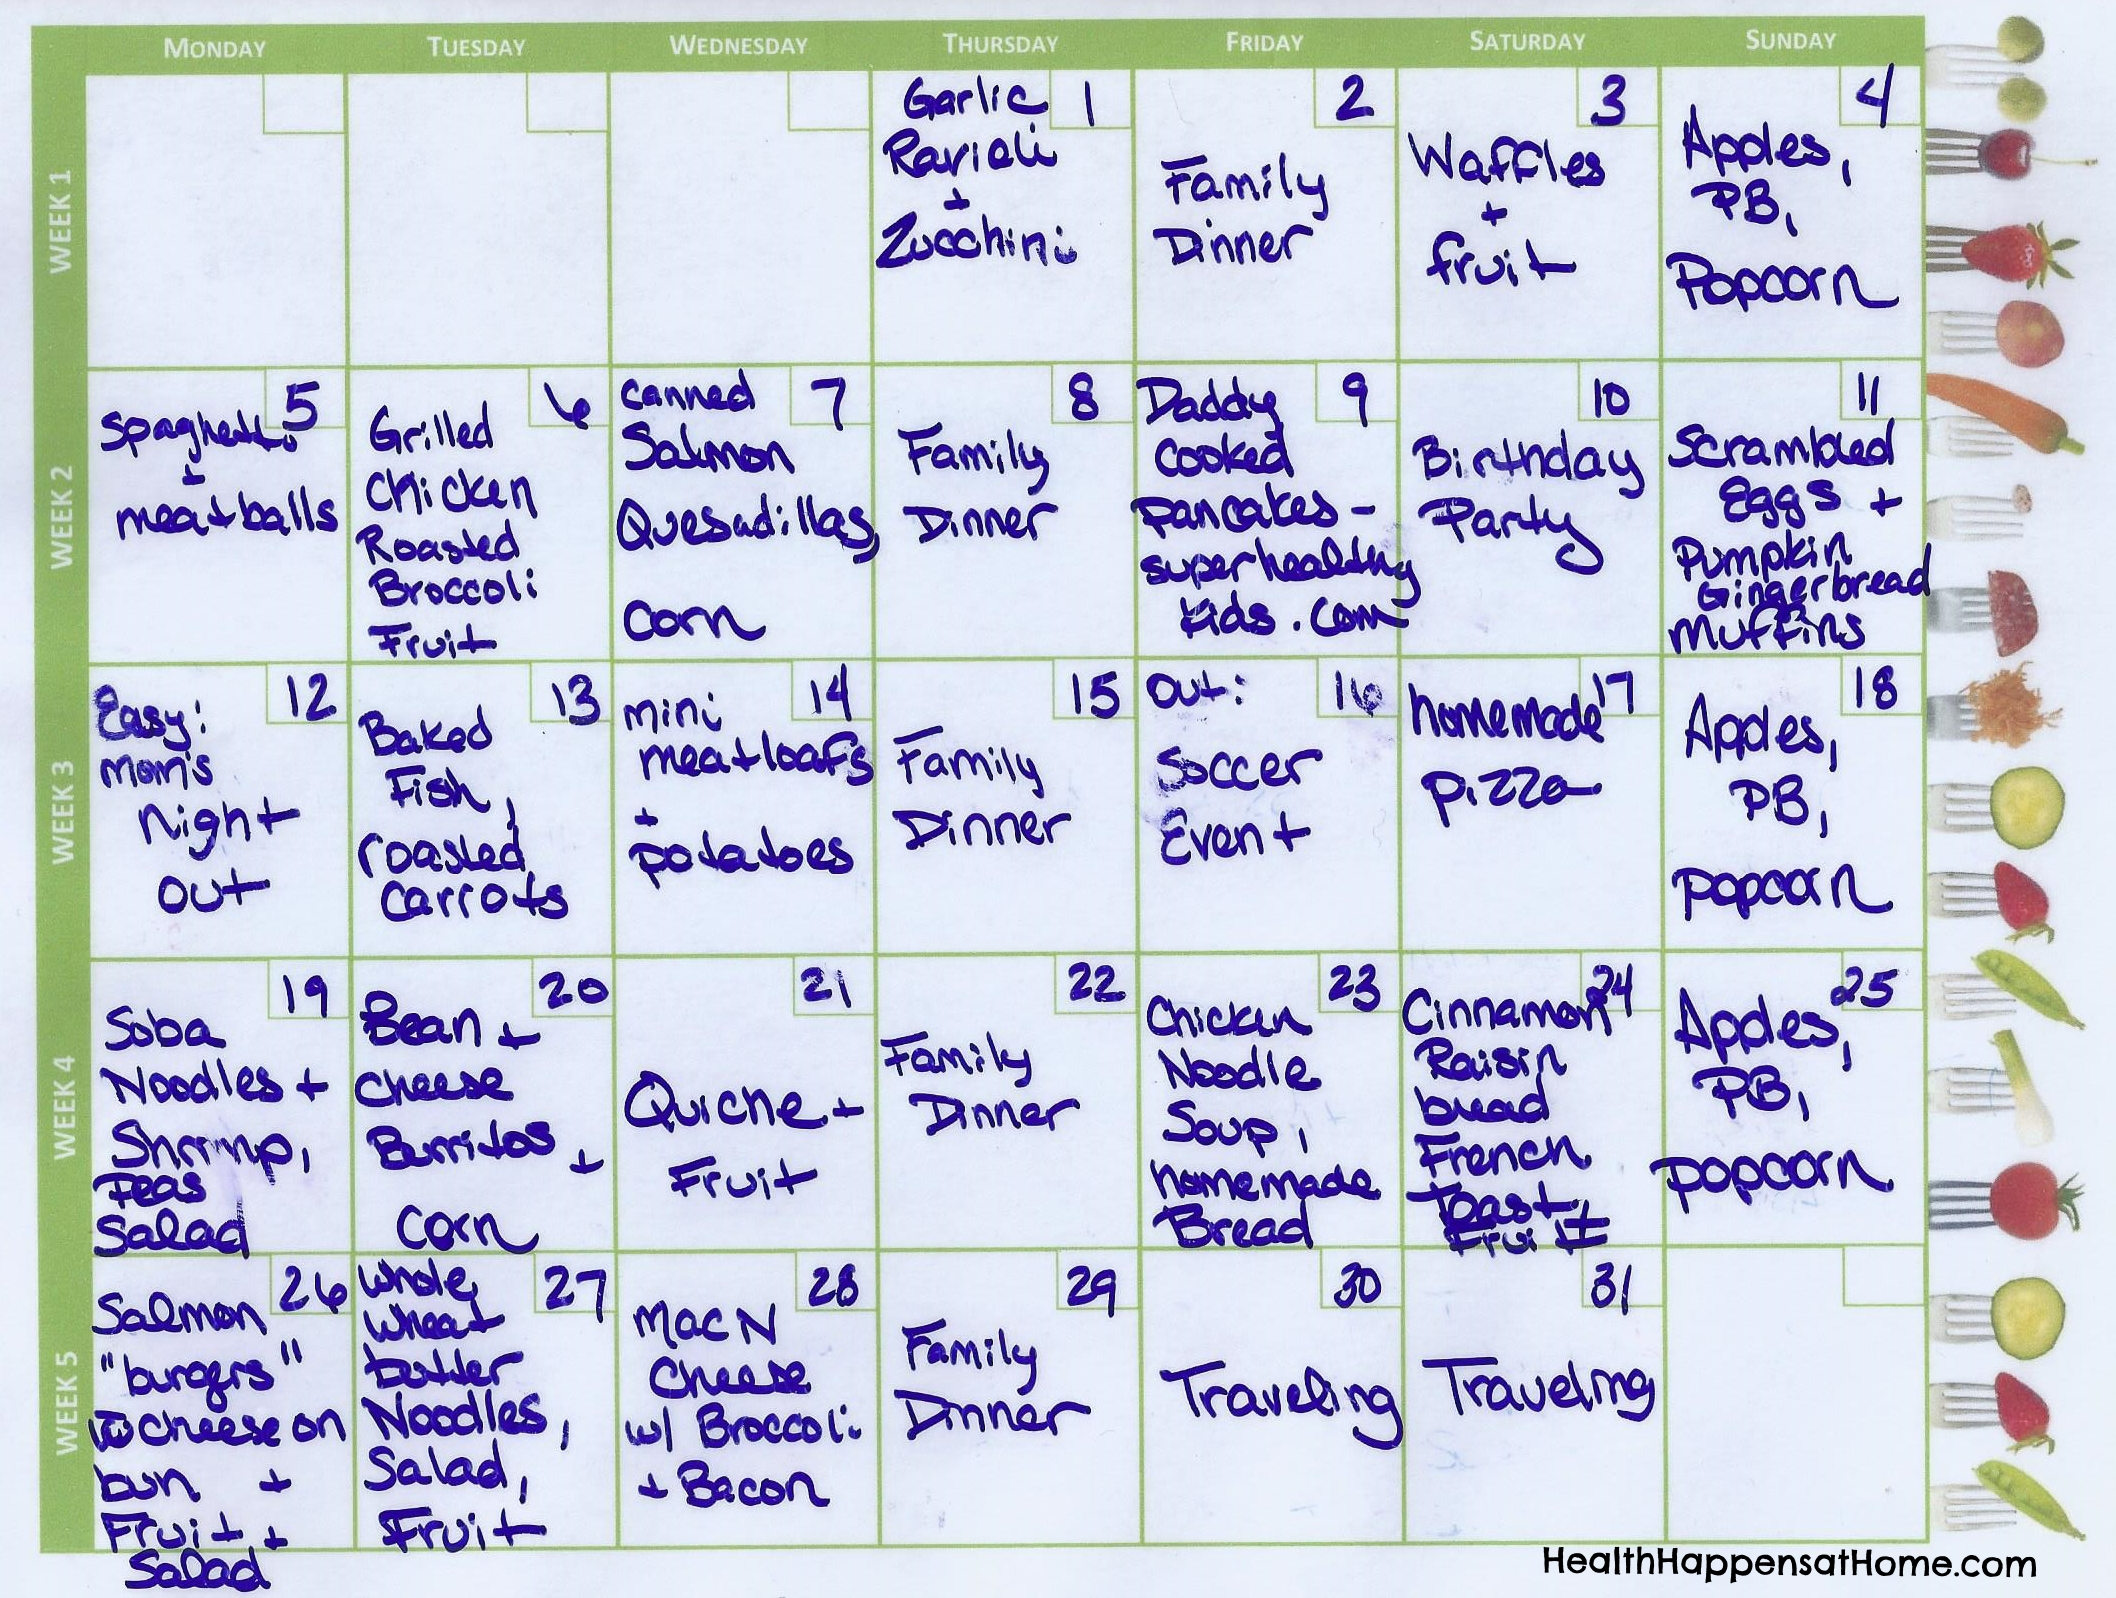 October's Meal Plan